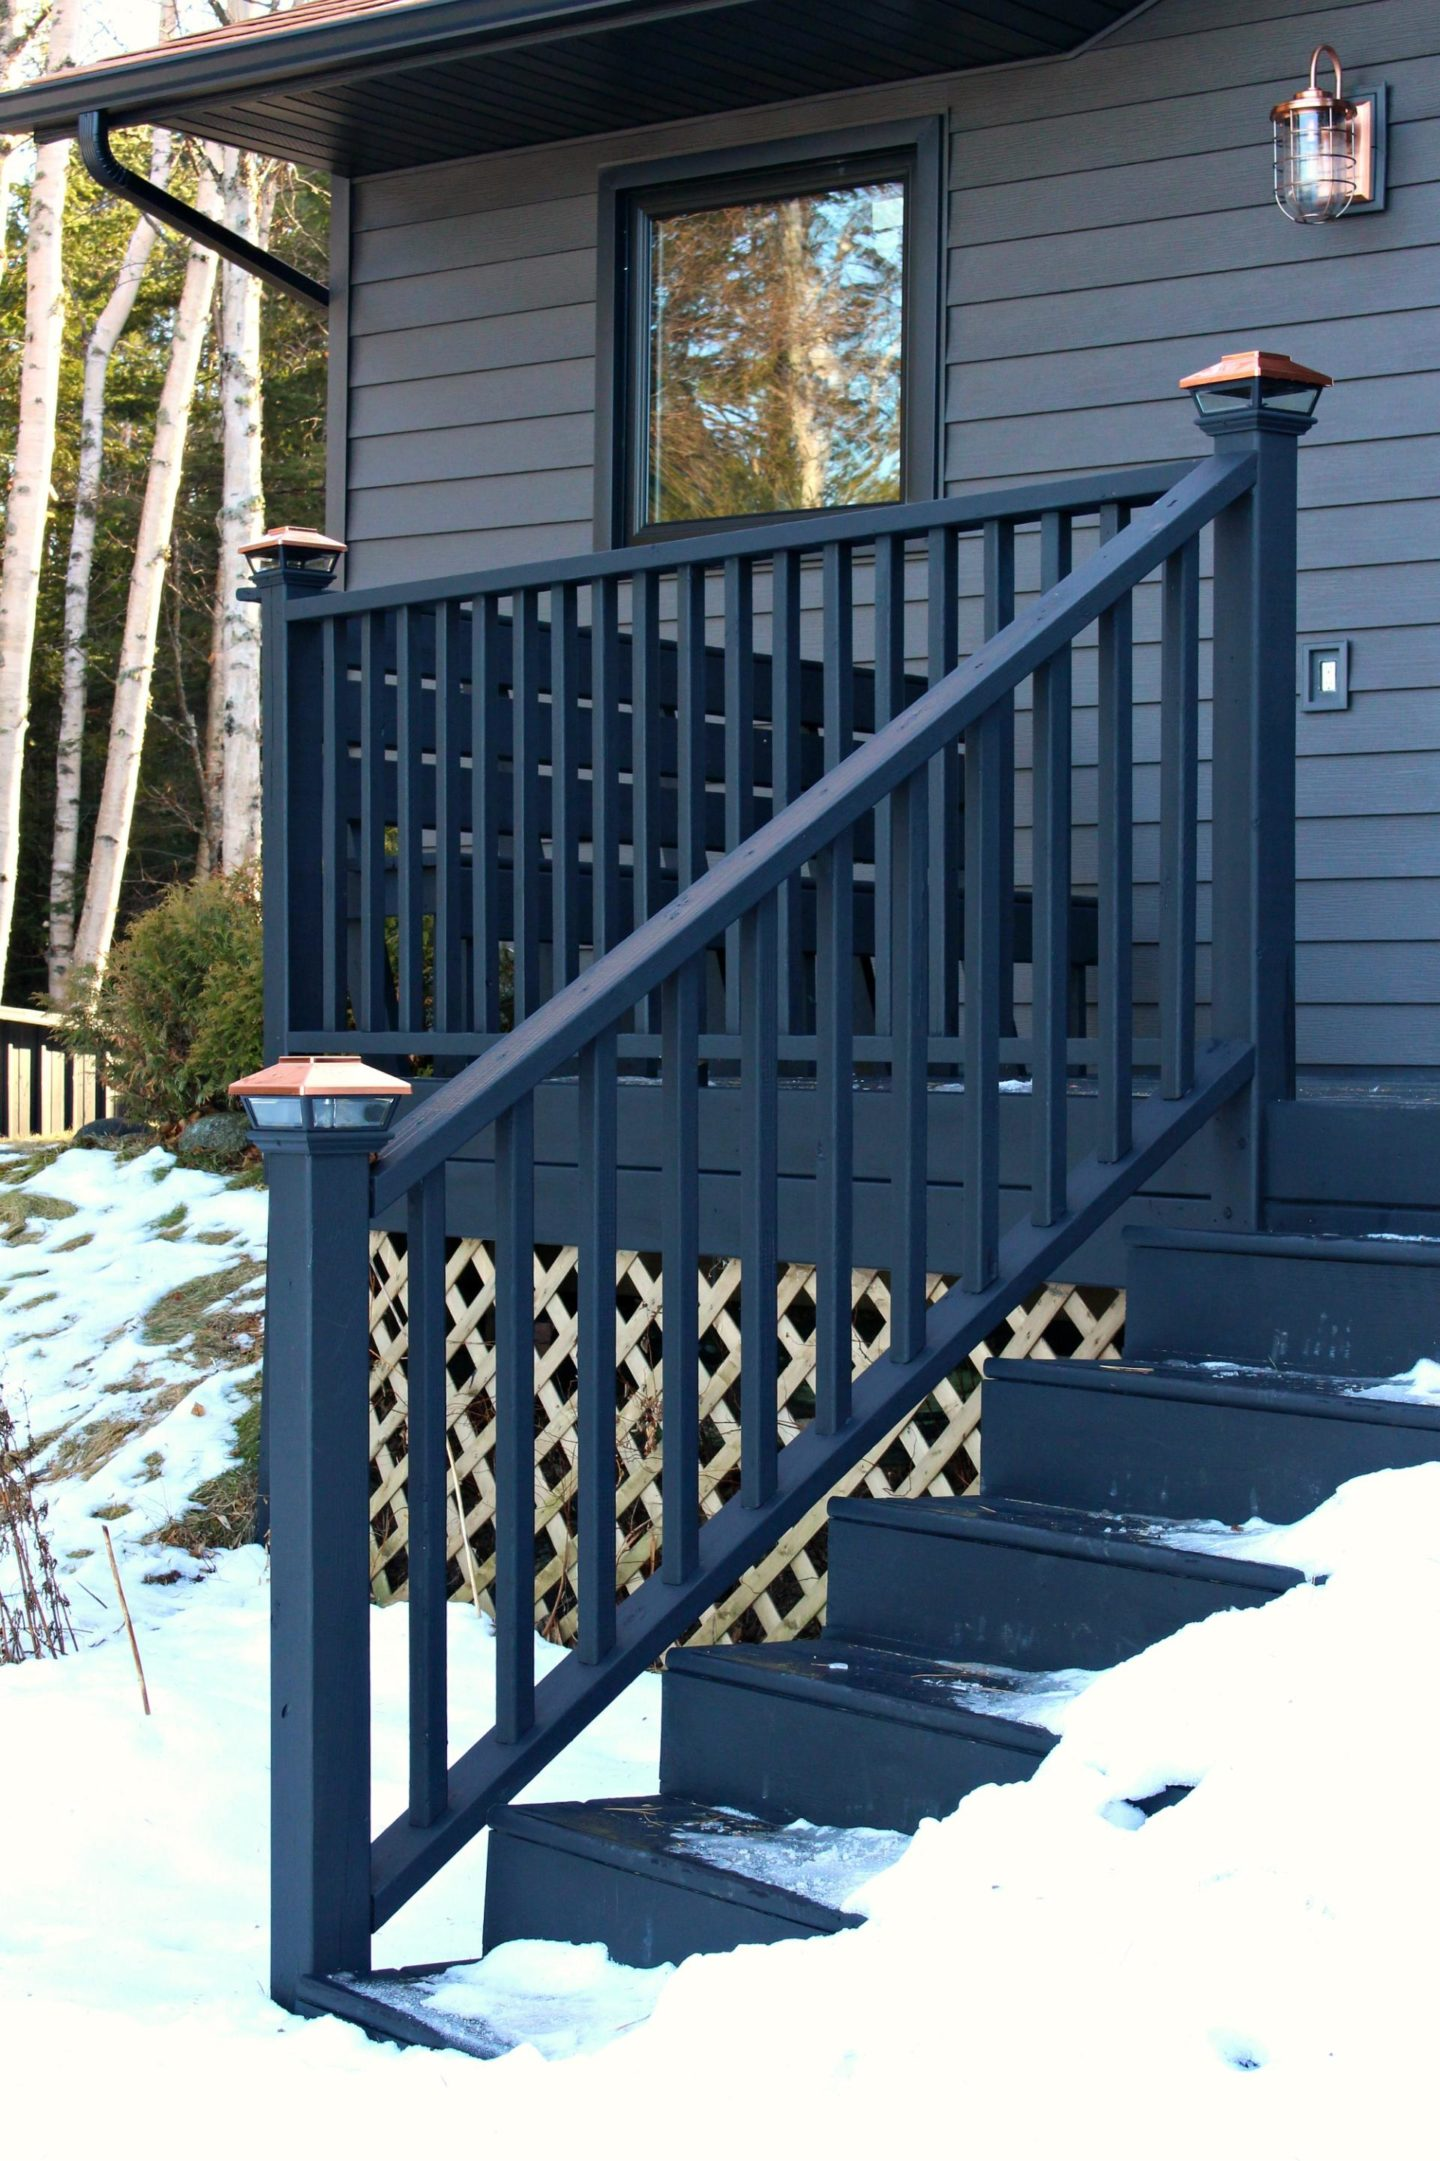 Olympic Black Deck Stain in Mystic Black and Veranda Copper Solar Deck Caps | Staining the Deck Black with Dans le Lakehouse